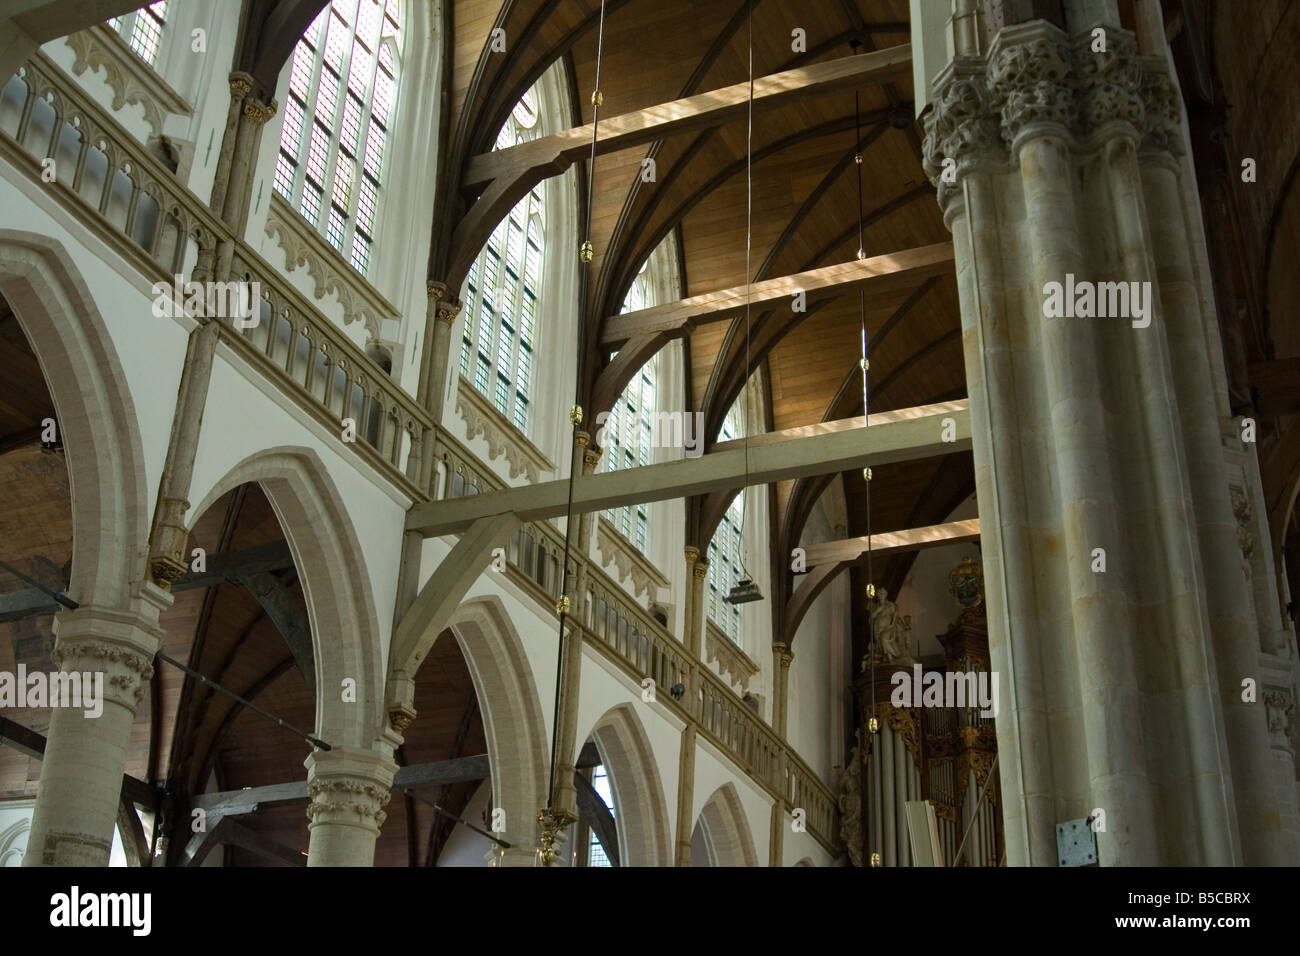 Church beams column columns windows arch archway wood stone plaster wooden repetition god religion cathedral - Stock Image